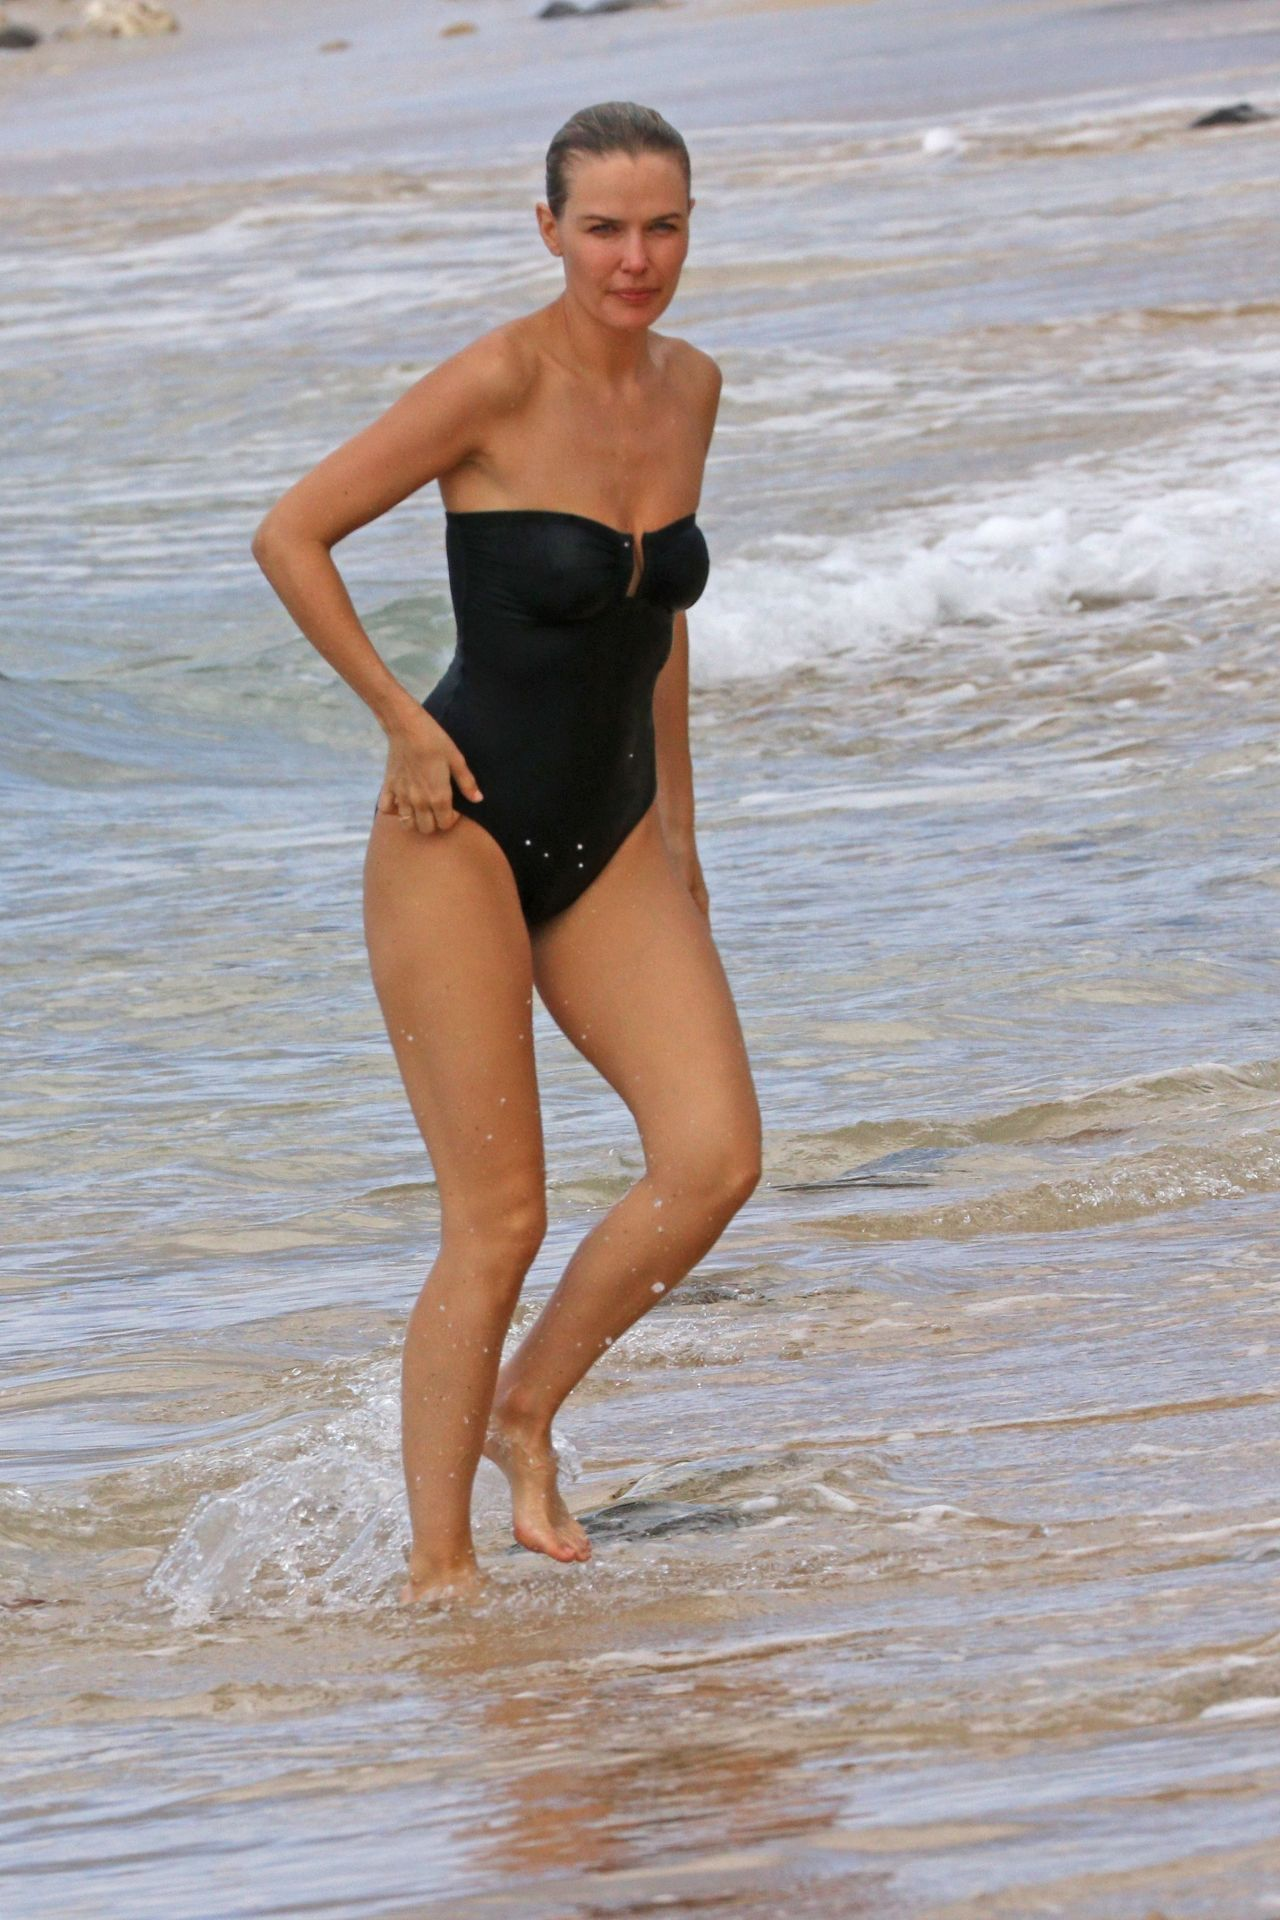 Lara Bingle in Swimsuit - Relaxes on the Beach in Hawaii